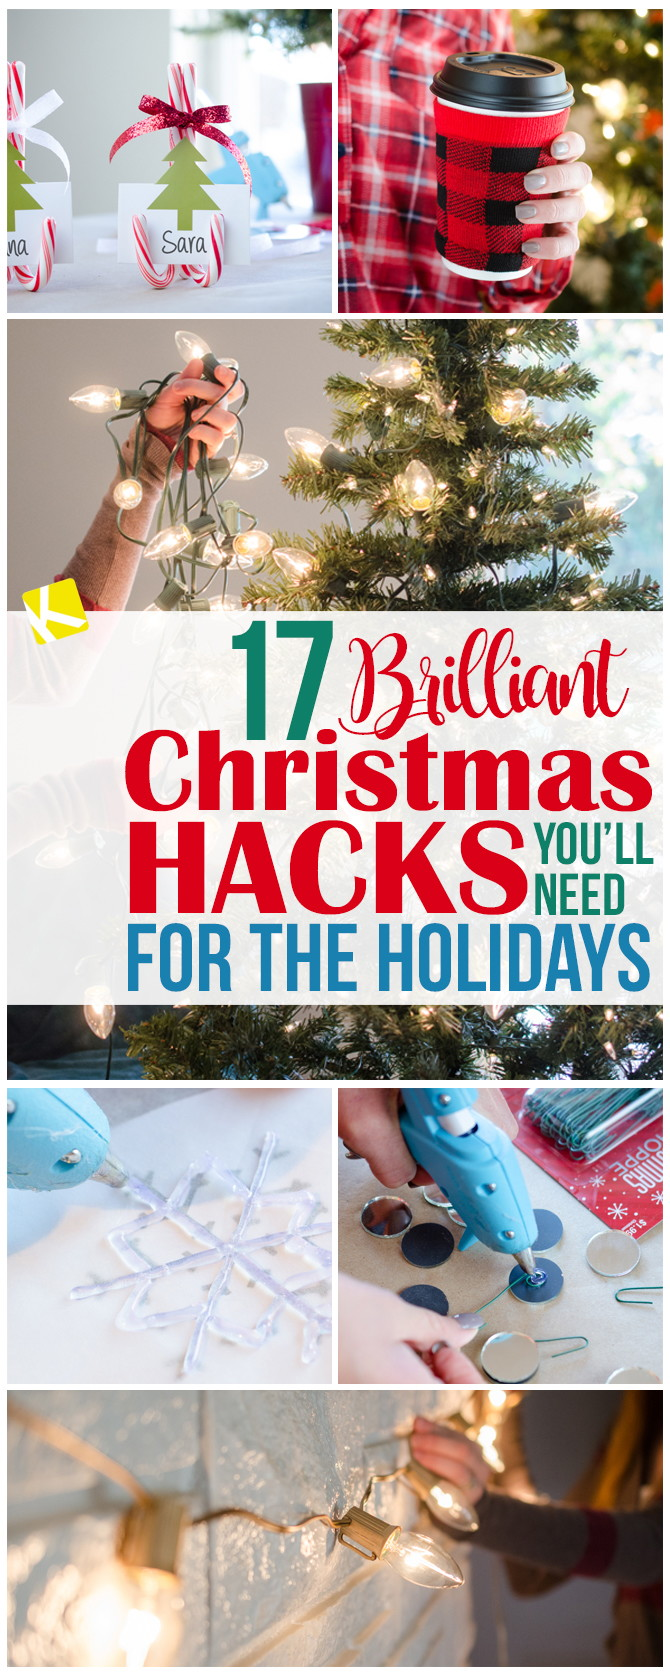 17 Brilliant Christmas Hacks You Ll Need For The Holidays